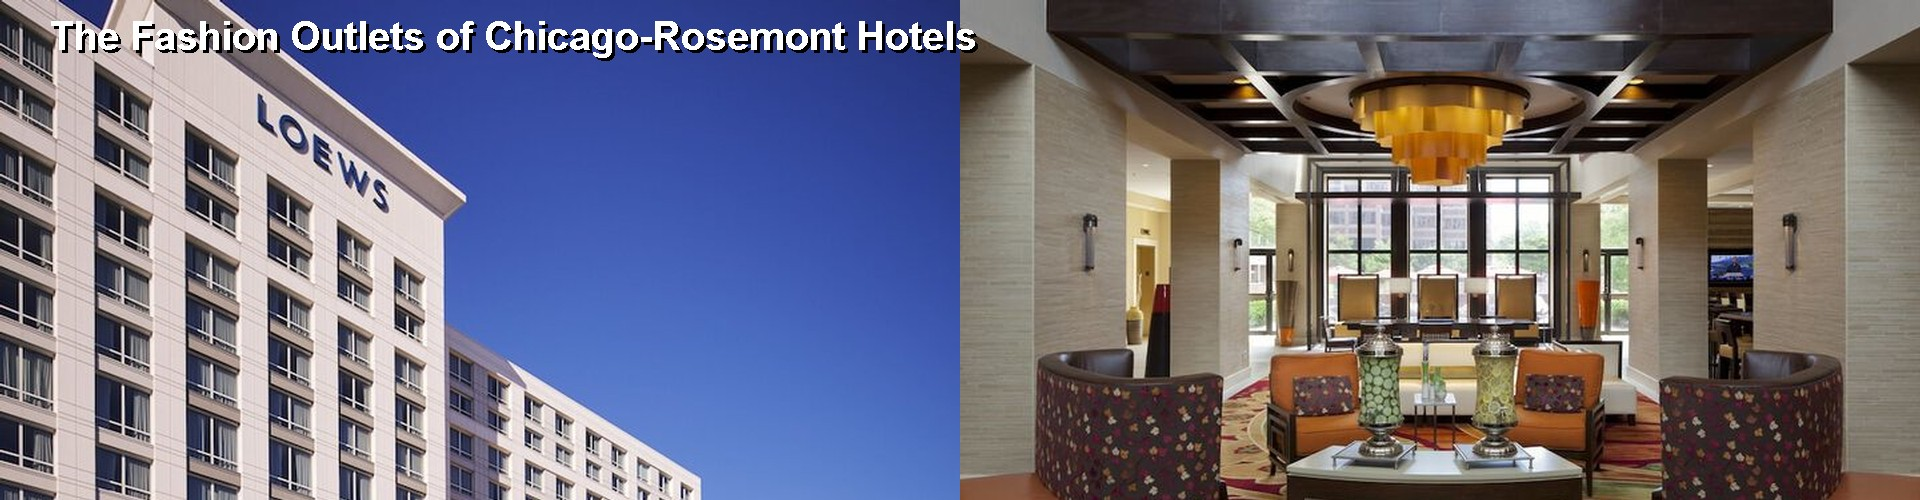 5 Best Hotels near The Fashion Outlets of Chicago-Rosemont